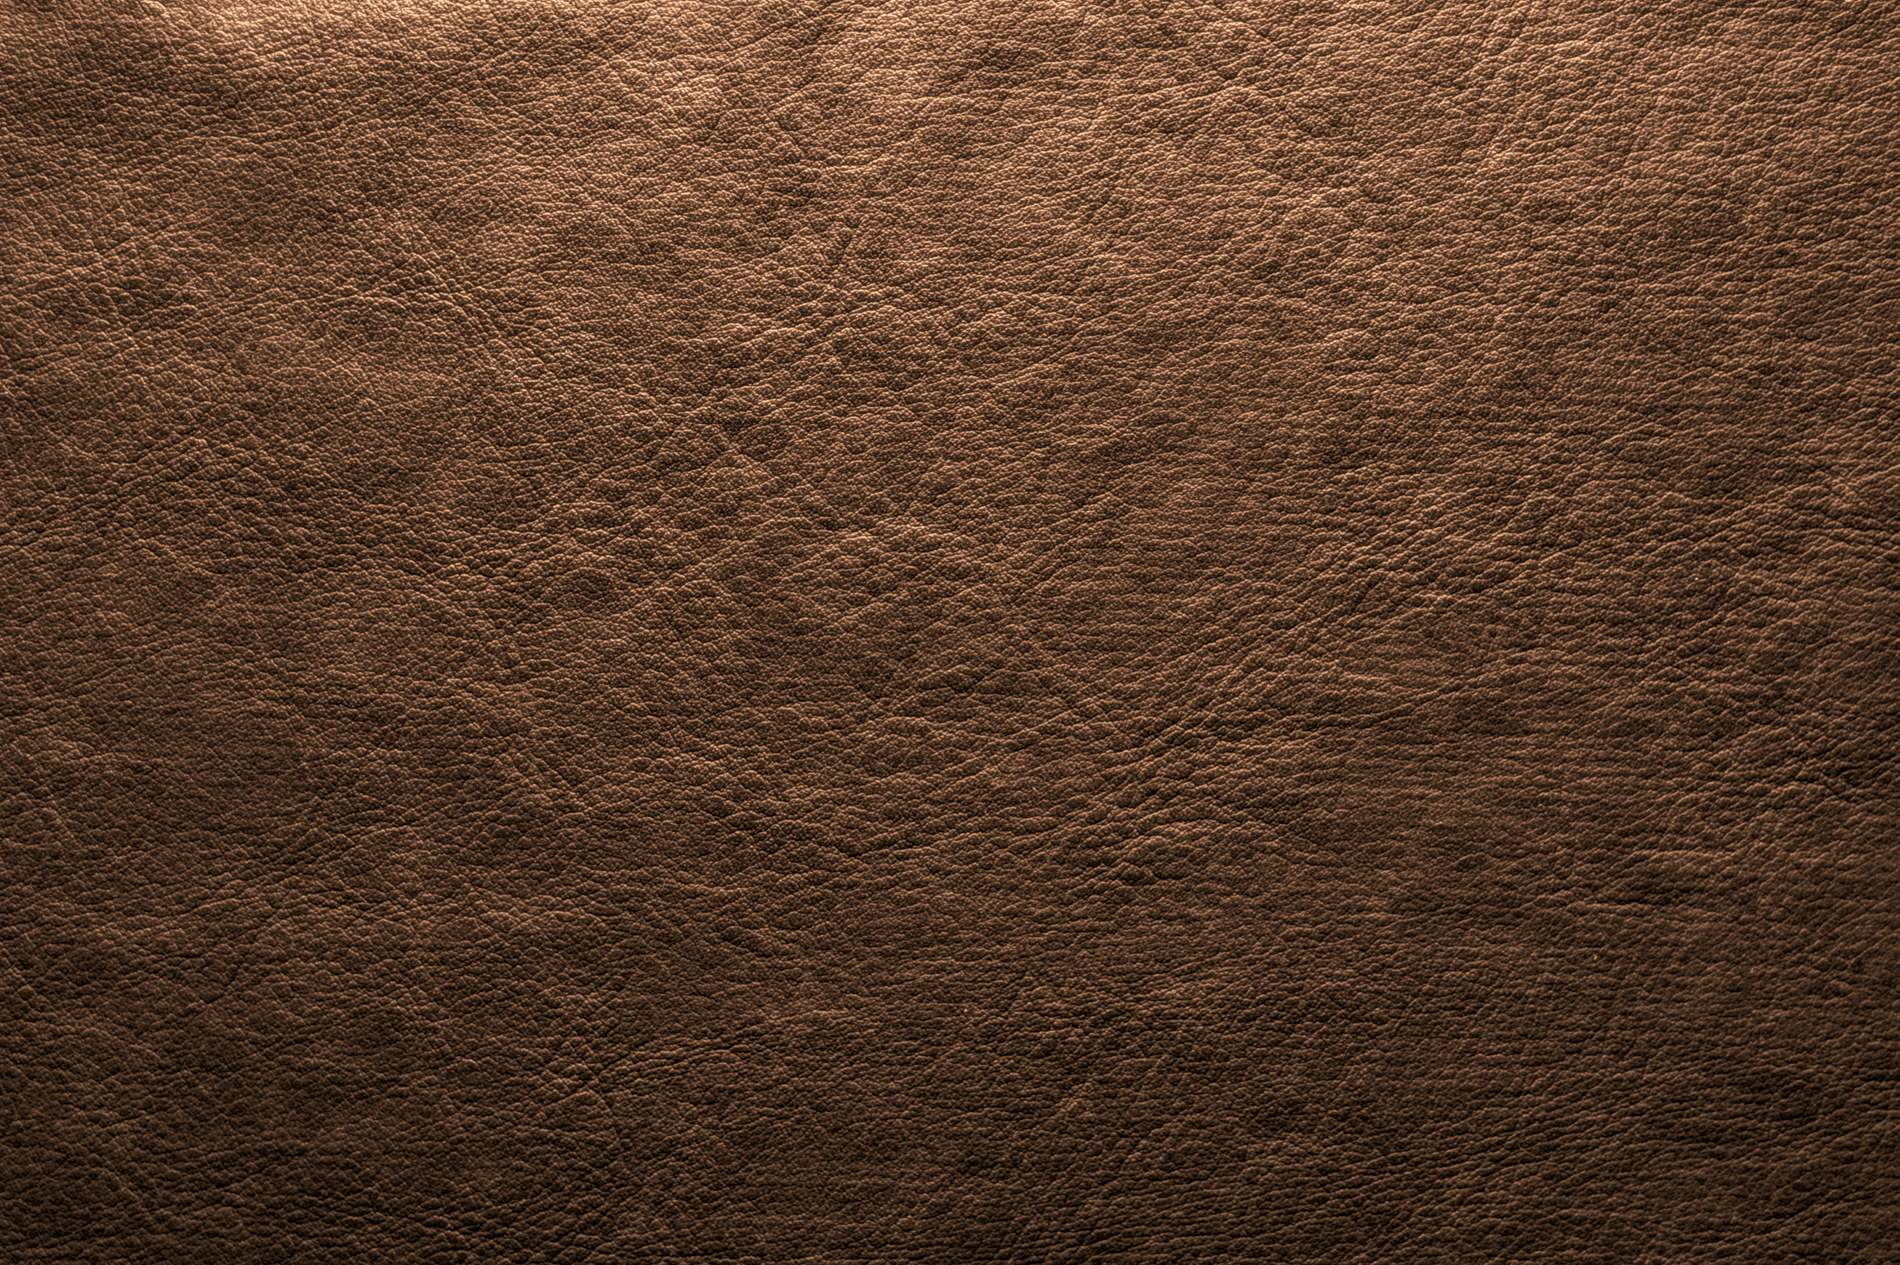 Free Green Cow Stock Photo Images Of Home Design Biogas Diagram Image 36146824 Abstract Dark Brown Leather Background